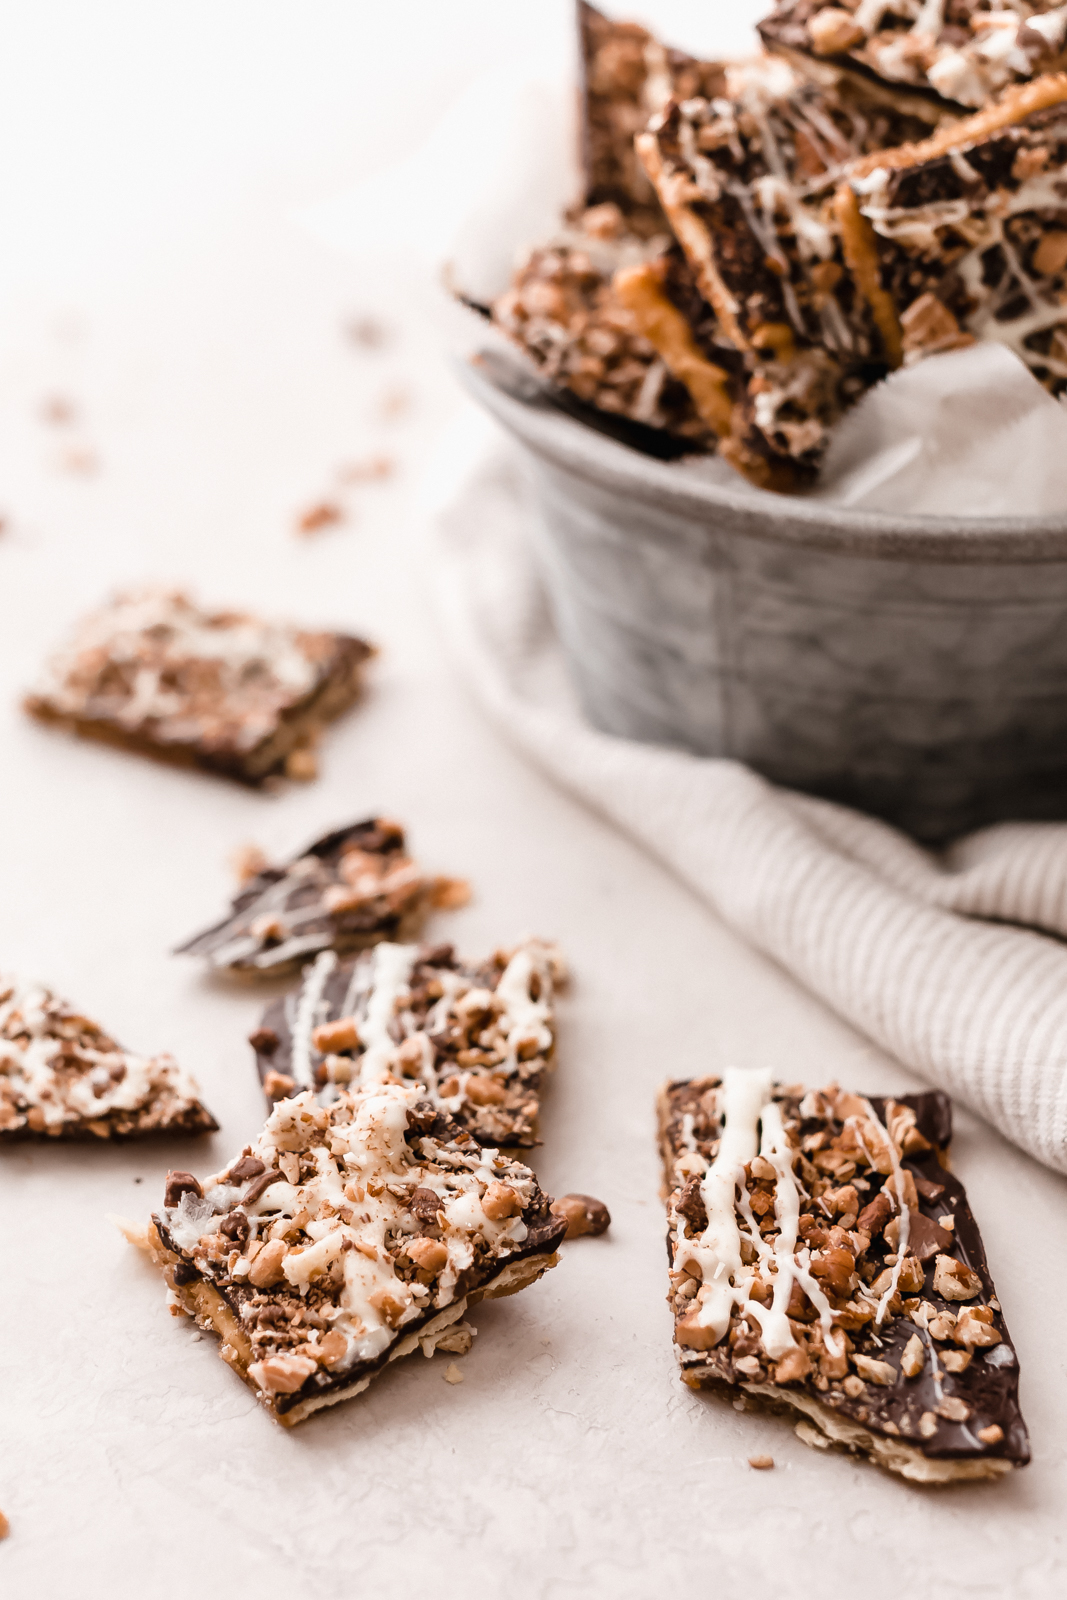 pieces of broken toffee bark on grey surface with galvanized bucketful in the back